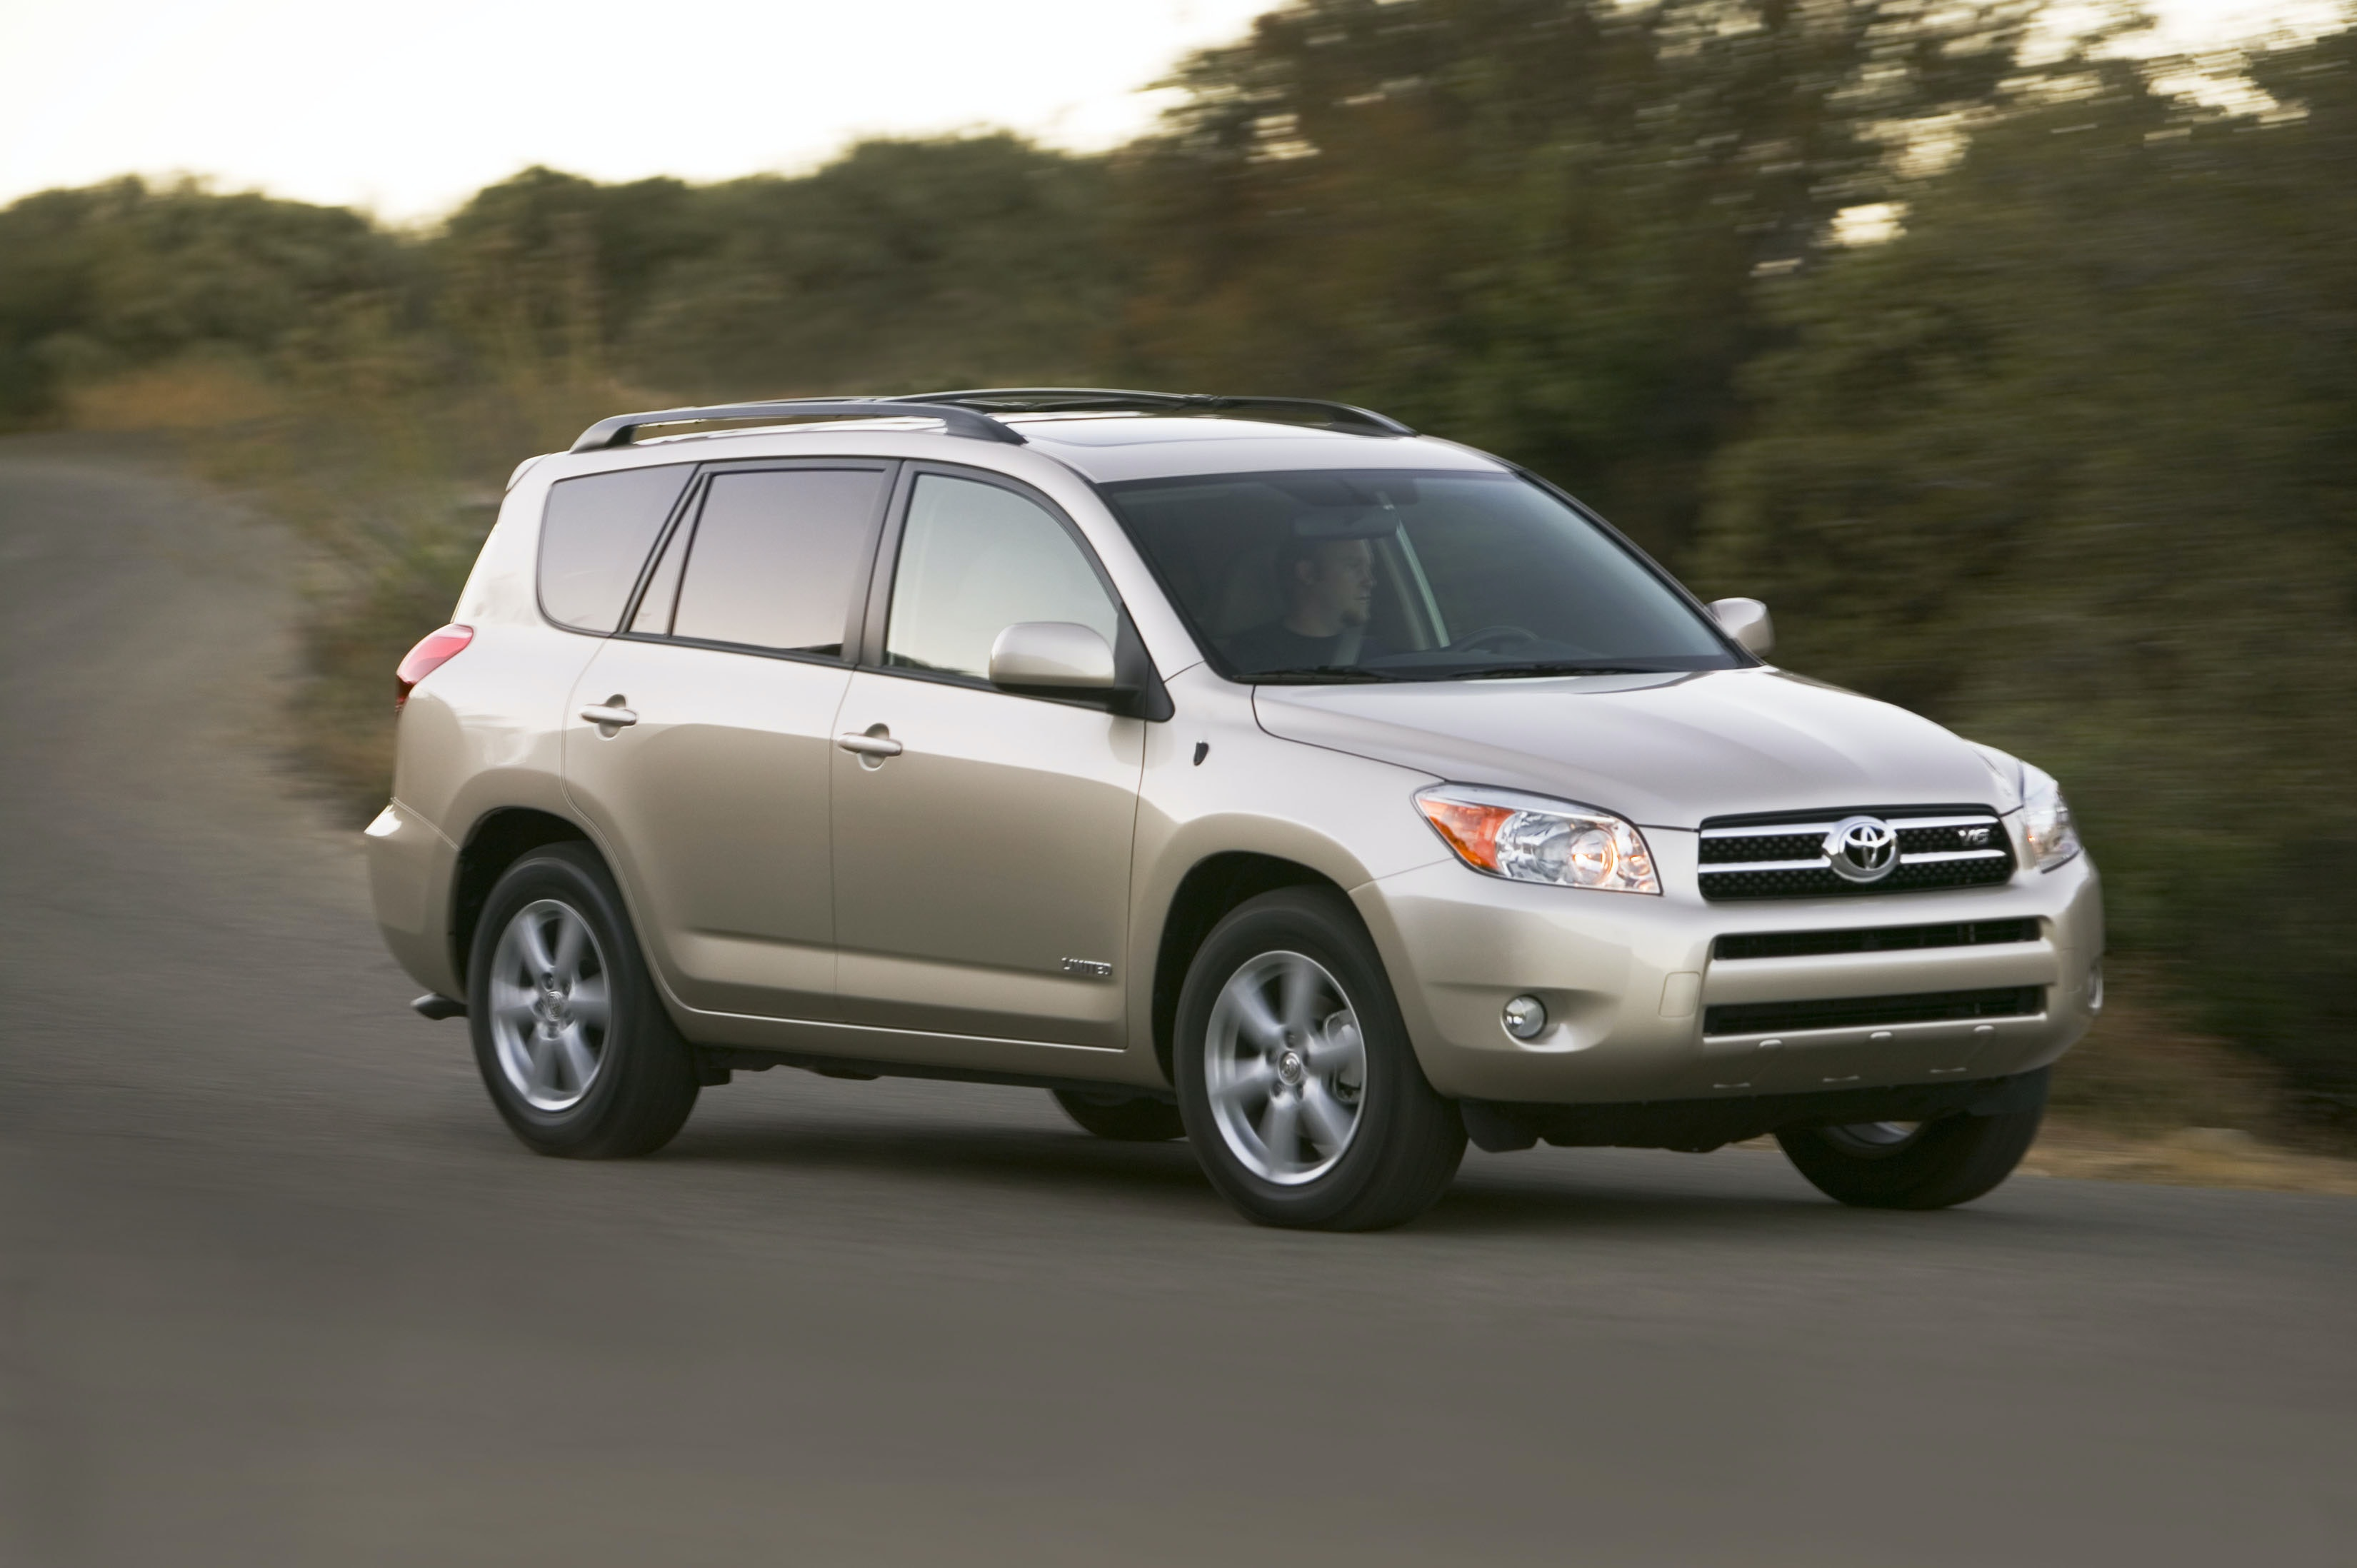 2006 Toyota RAV4 Review | CARFAX Vehicle Research